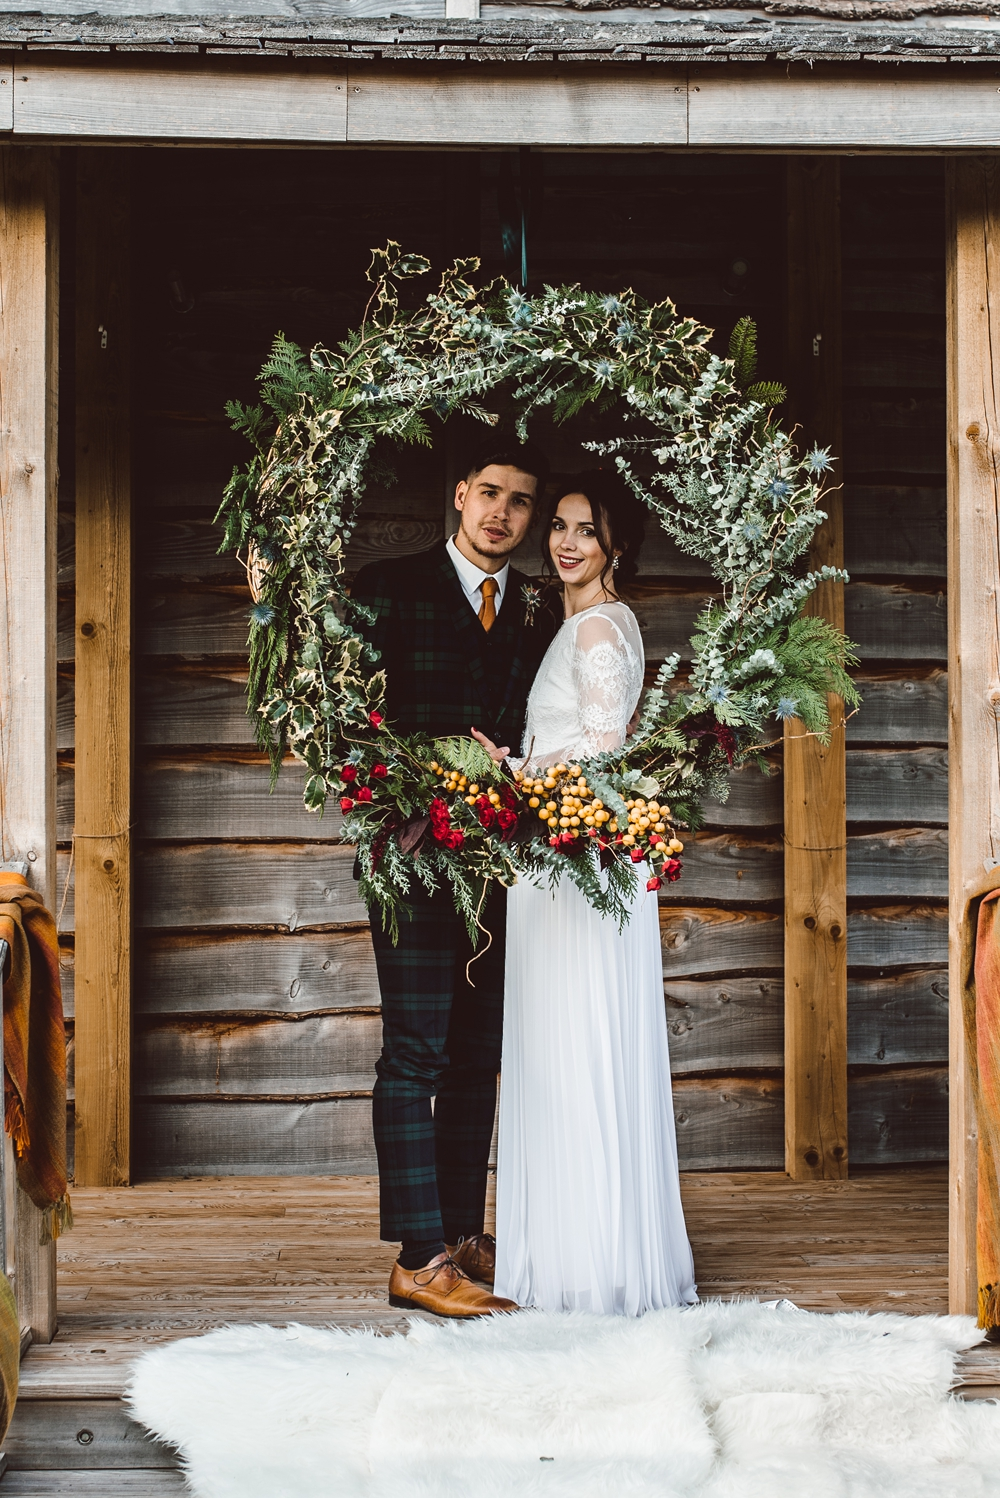 Rustic Christmas Wedding Ideas with a Moon Gate Flower Arch | Whimsical Wonderland Weddings